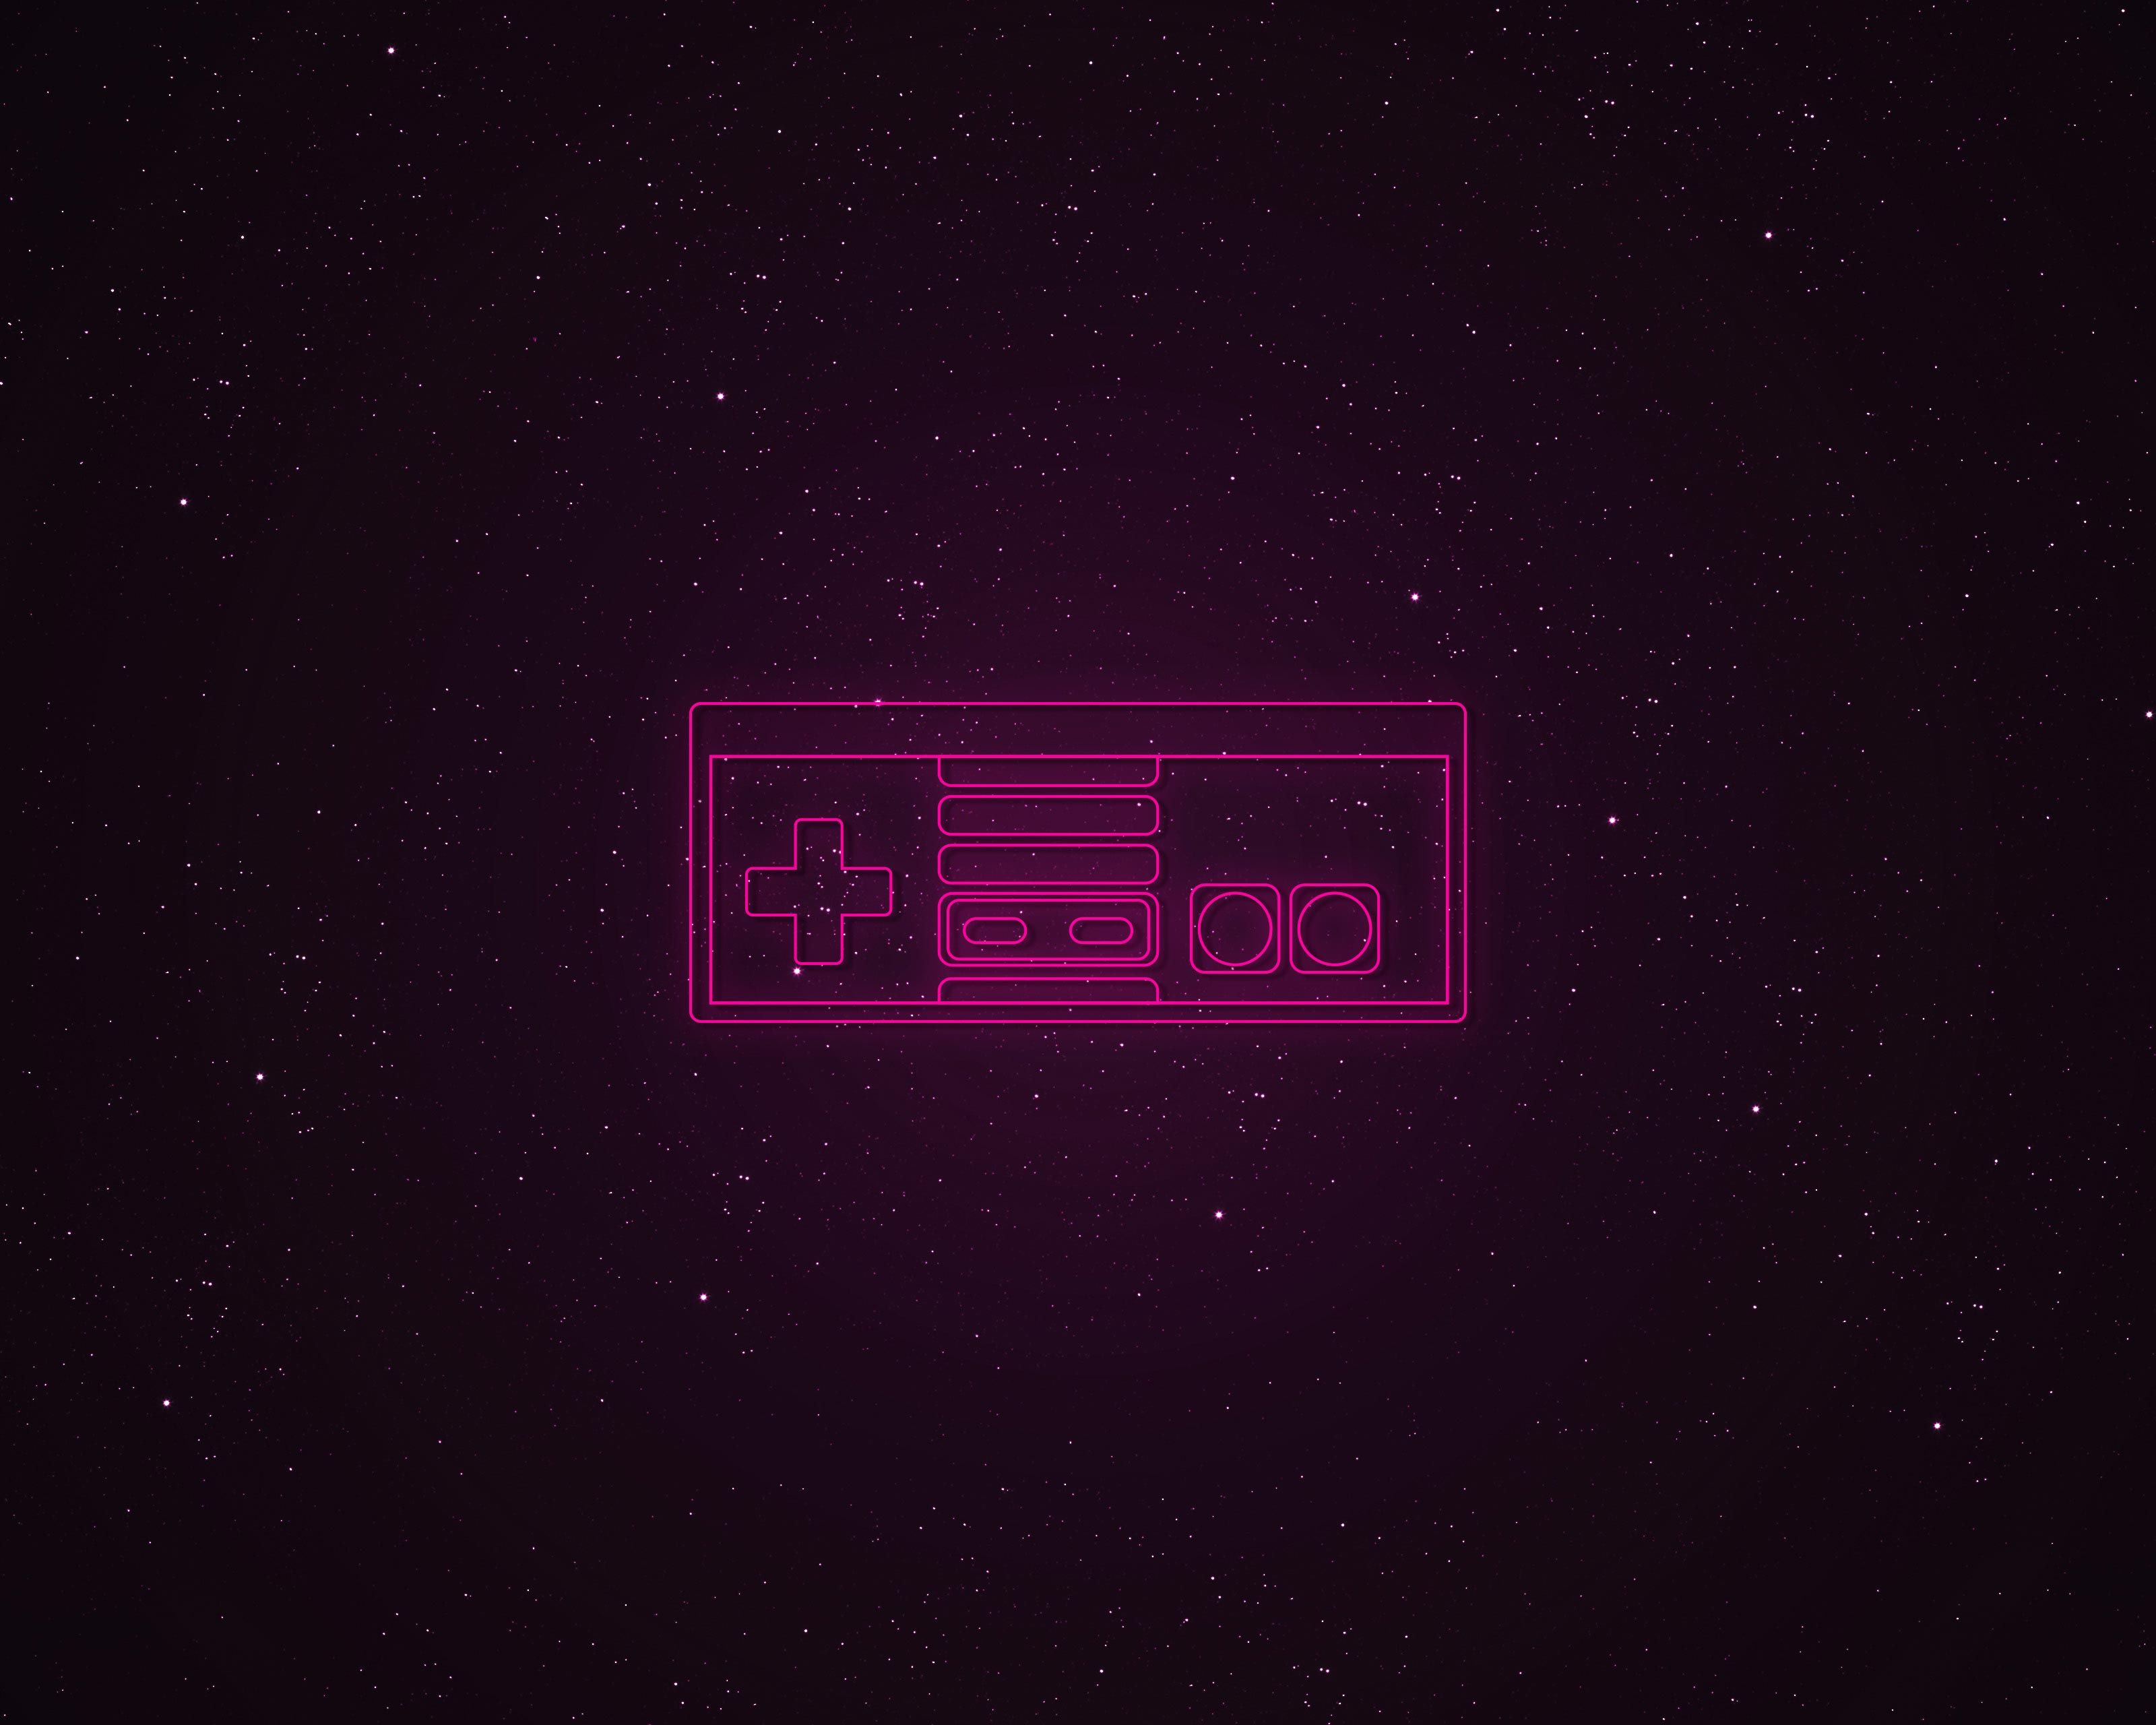 Rad Pack 80s Themed HD Wallpapers Nate Wren Graphic Design